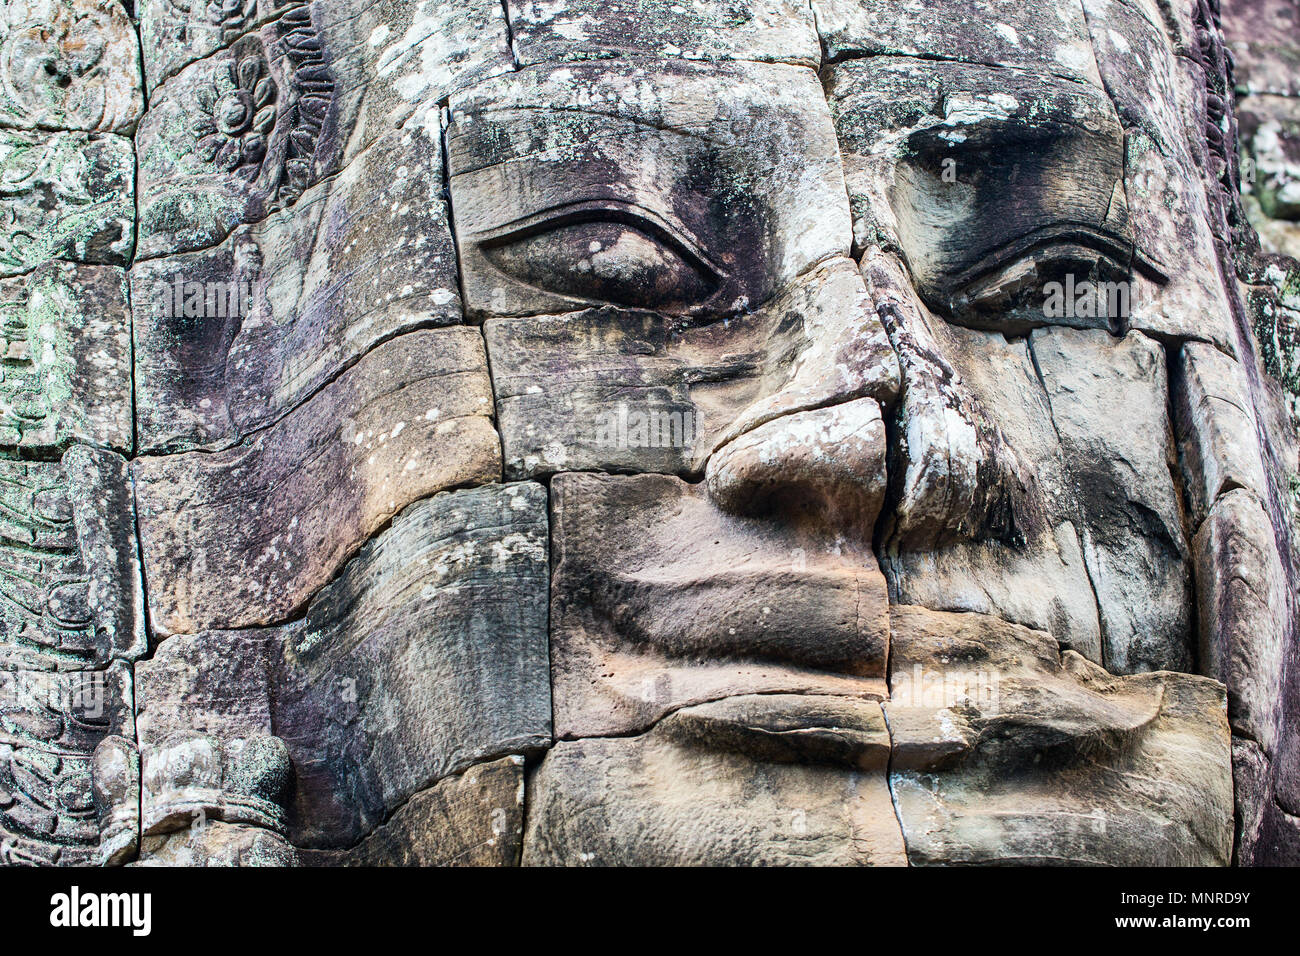 Faces of ancient Bayon temple popular tourist attraction in Angkor Thom,  Siem Reap,  Cambodia. - Stock Image